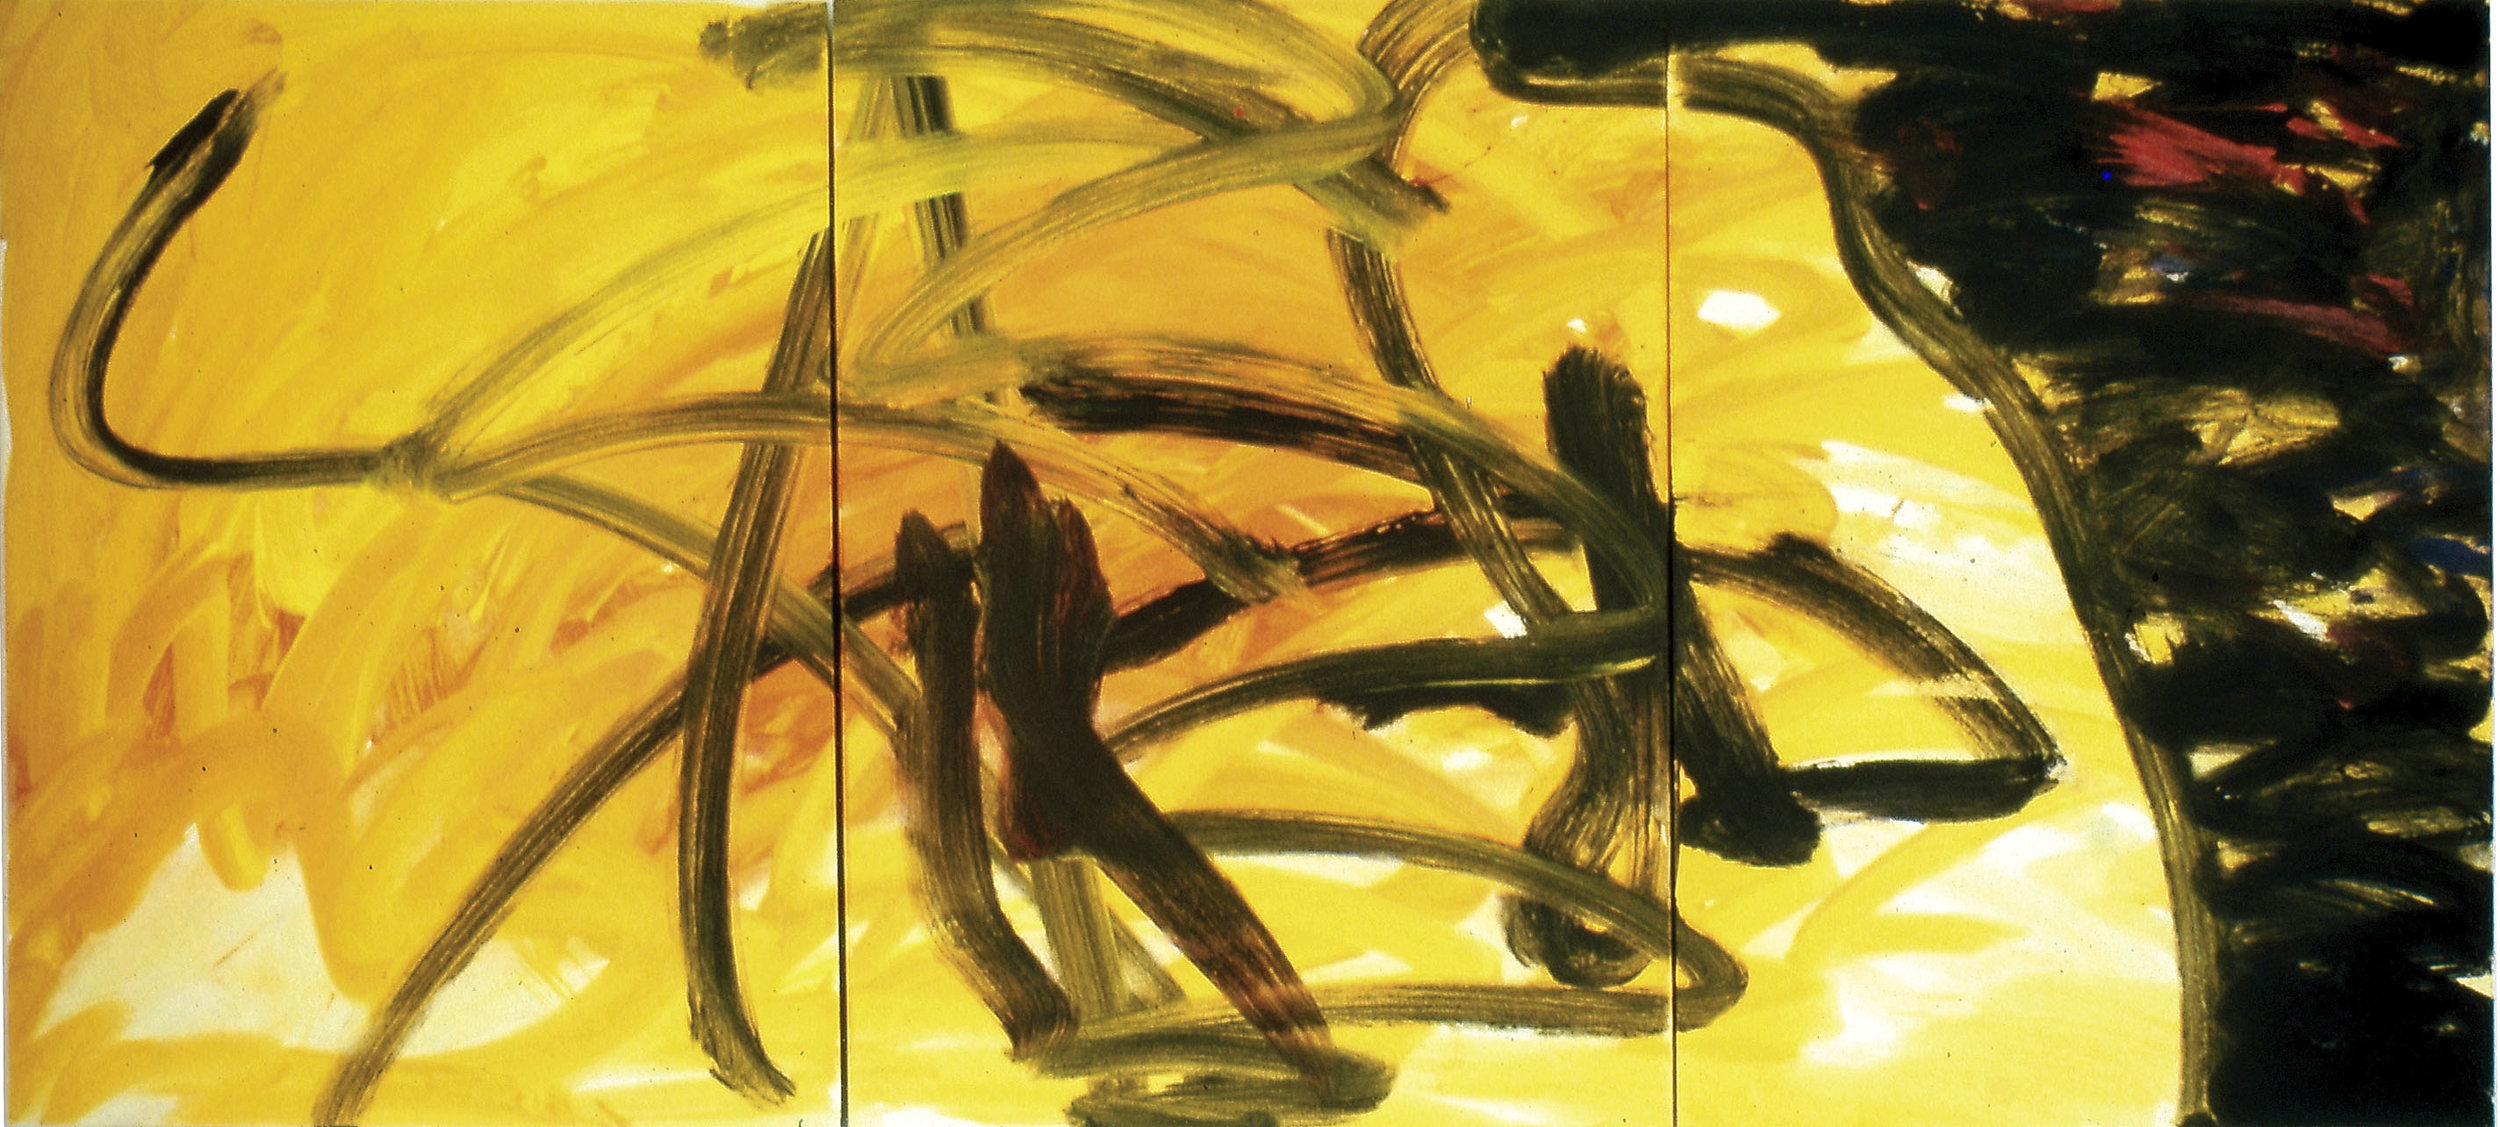 In Fear of War I  1991, acrylic on masonite, 32x72 in In the collection of the Dallas Holocaust Museum